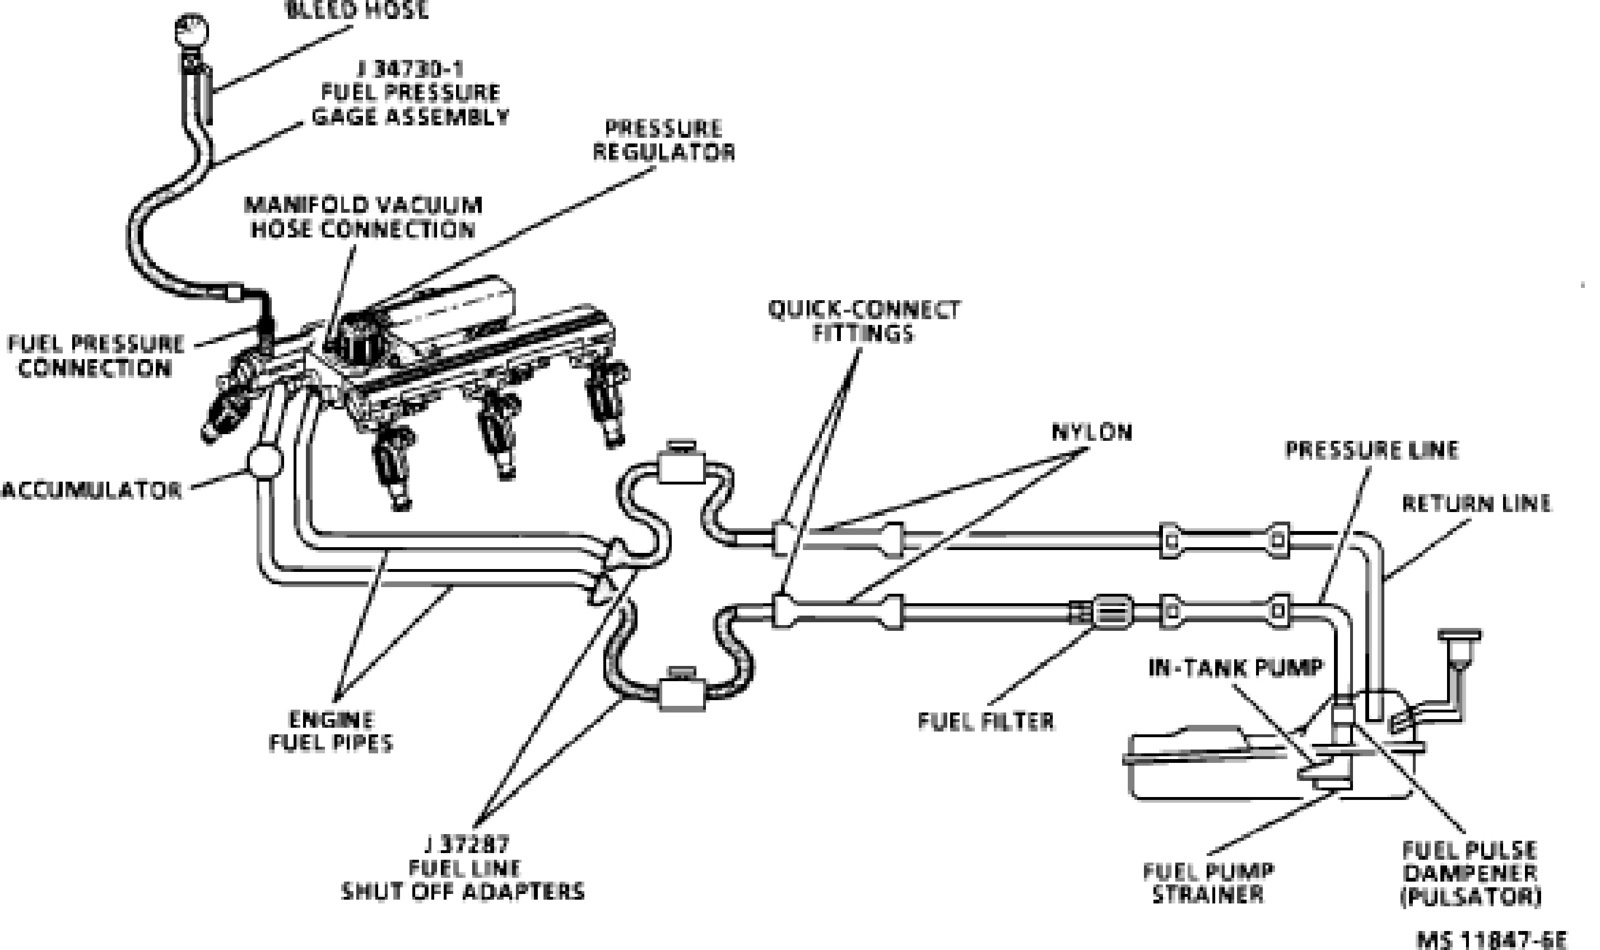 Chevrolet Lumina Questions Where Is The Fuel Pressure Regulator. GMC. 1994 GMC Truck Fuel System Diagram At Scoala.co